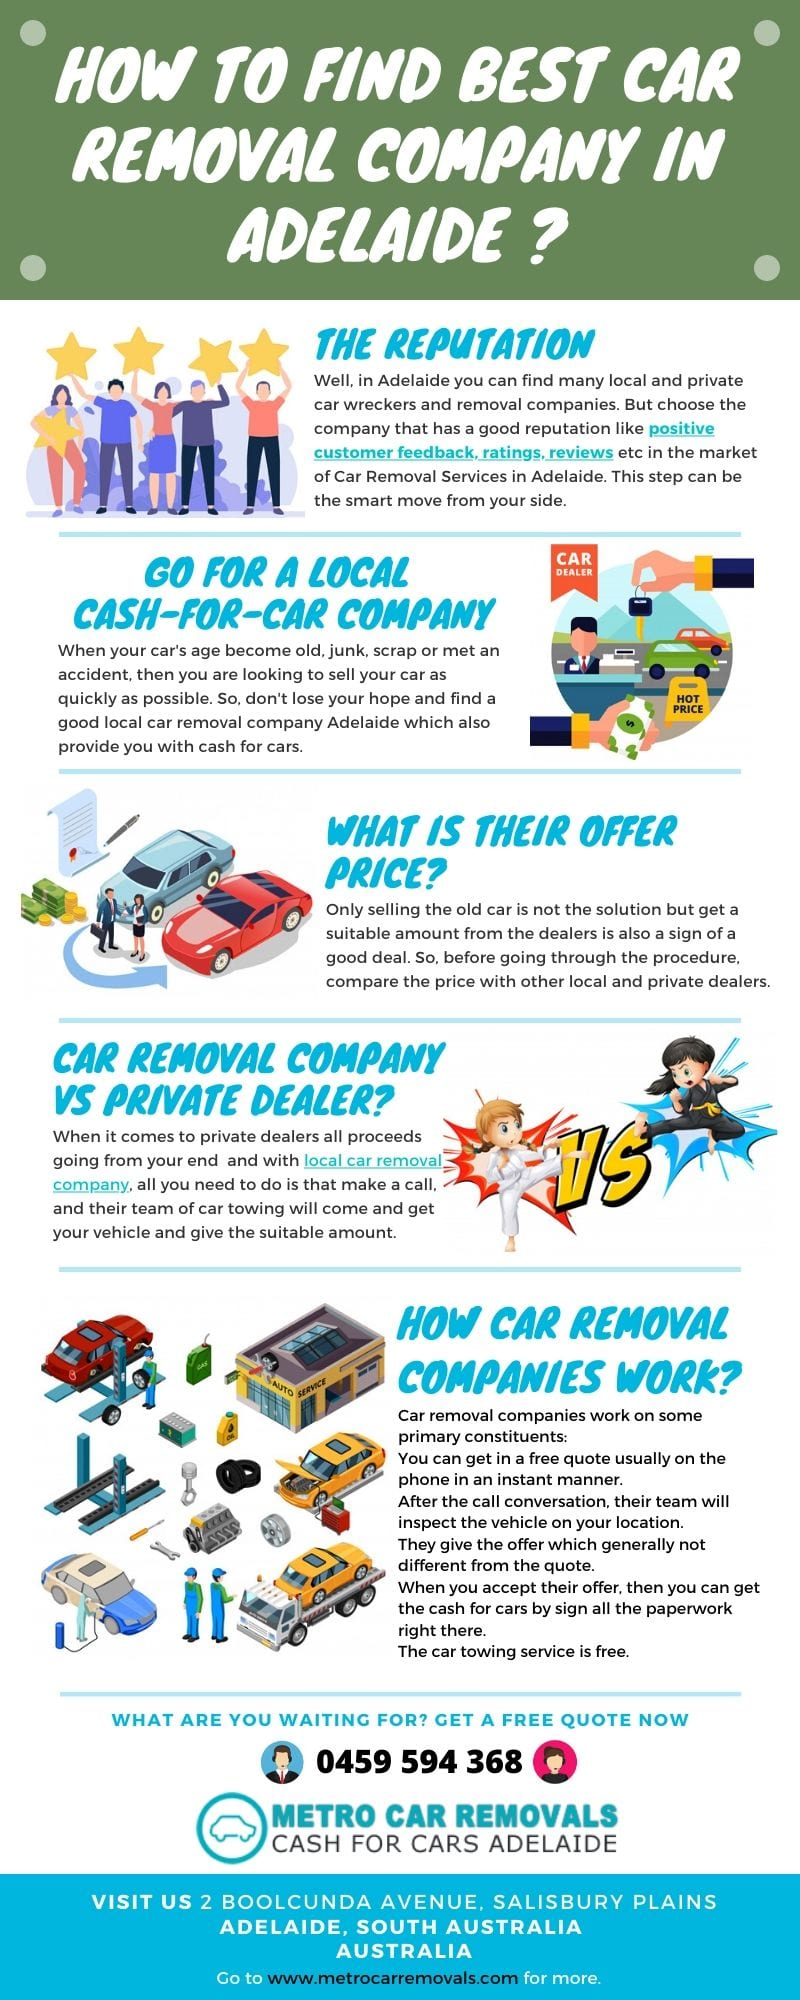 How to find best Car Removal Company in adelaide